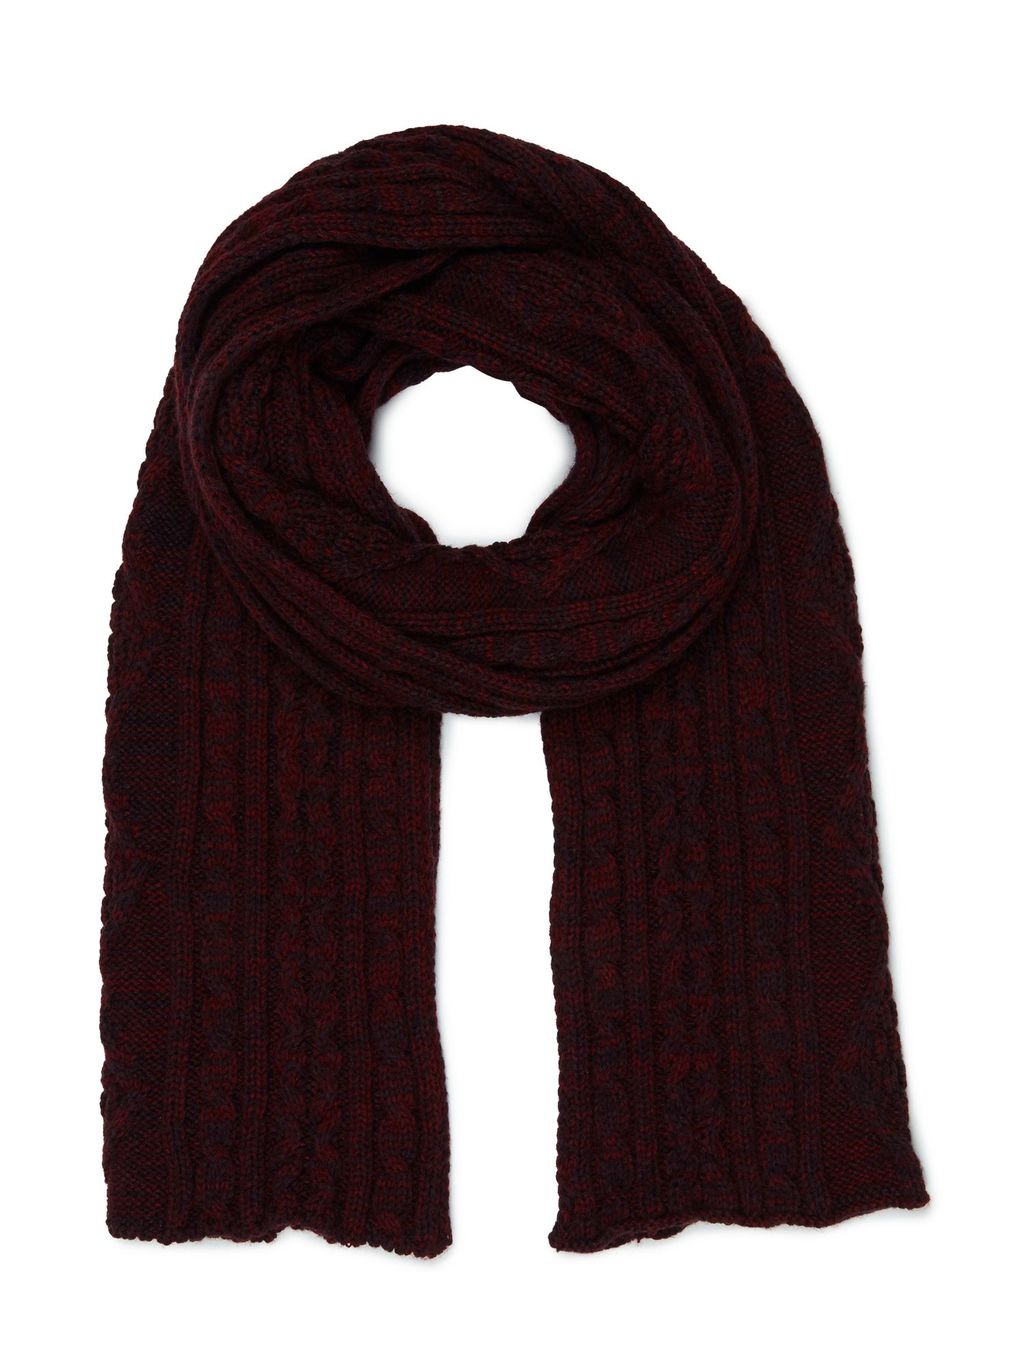 Cherry Cable Scarf, Red - predominant colour: aubergine; occasions: casual; type of pattern: standard; style: regular; size: standard; material: knits; pattern: plain; season: a/w 2016